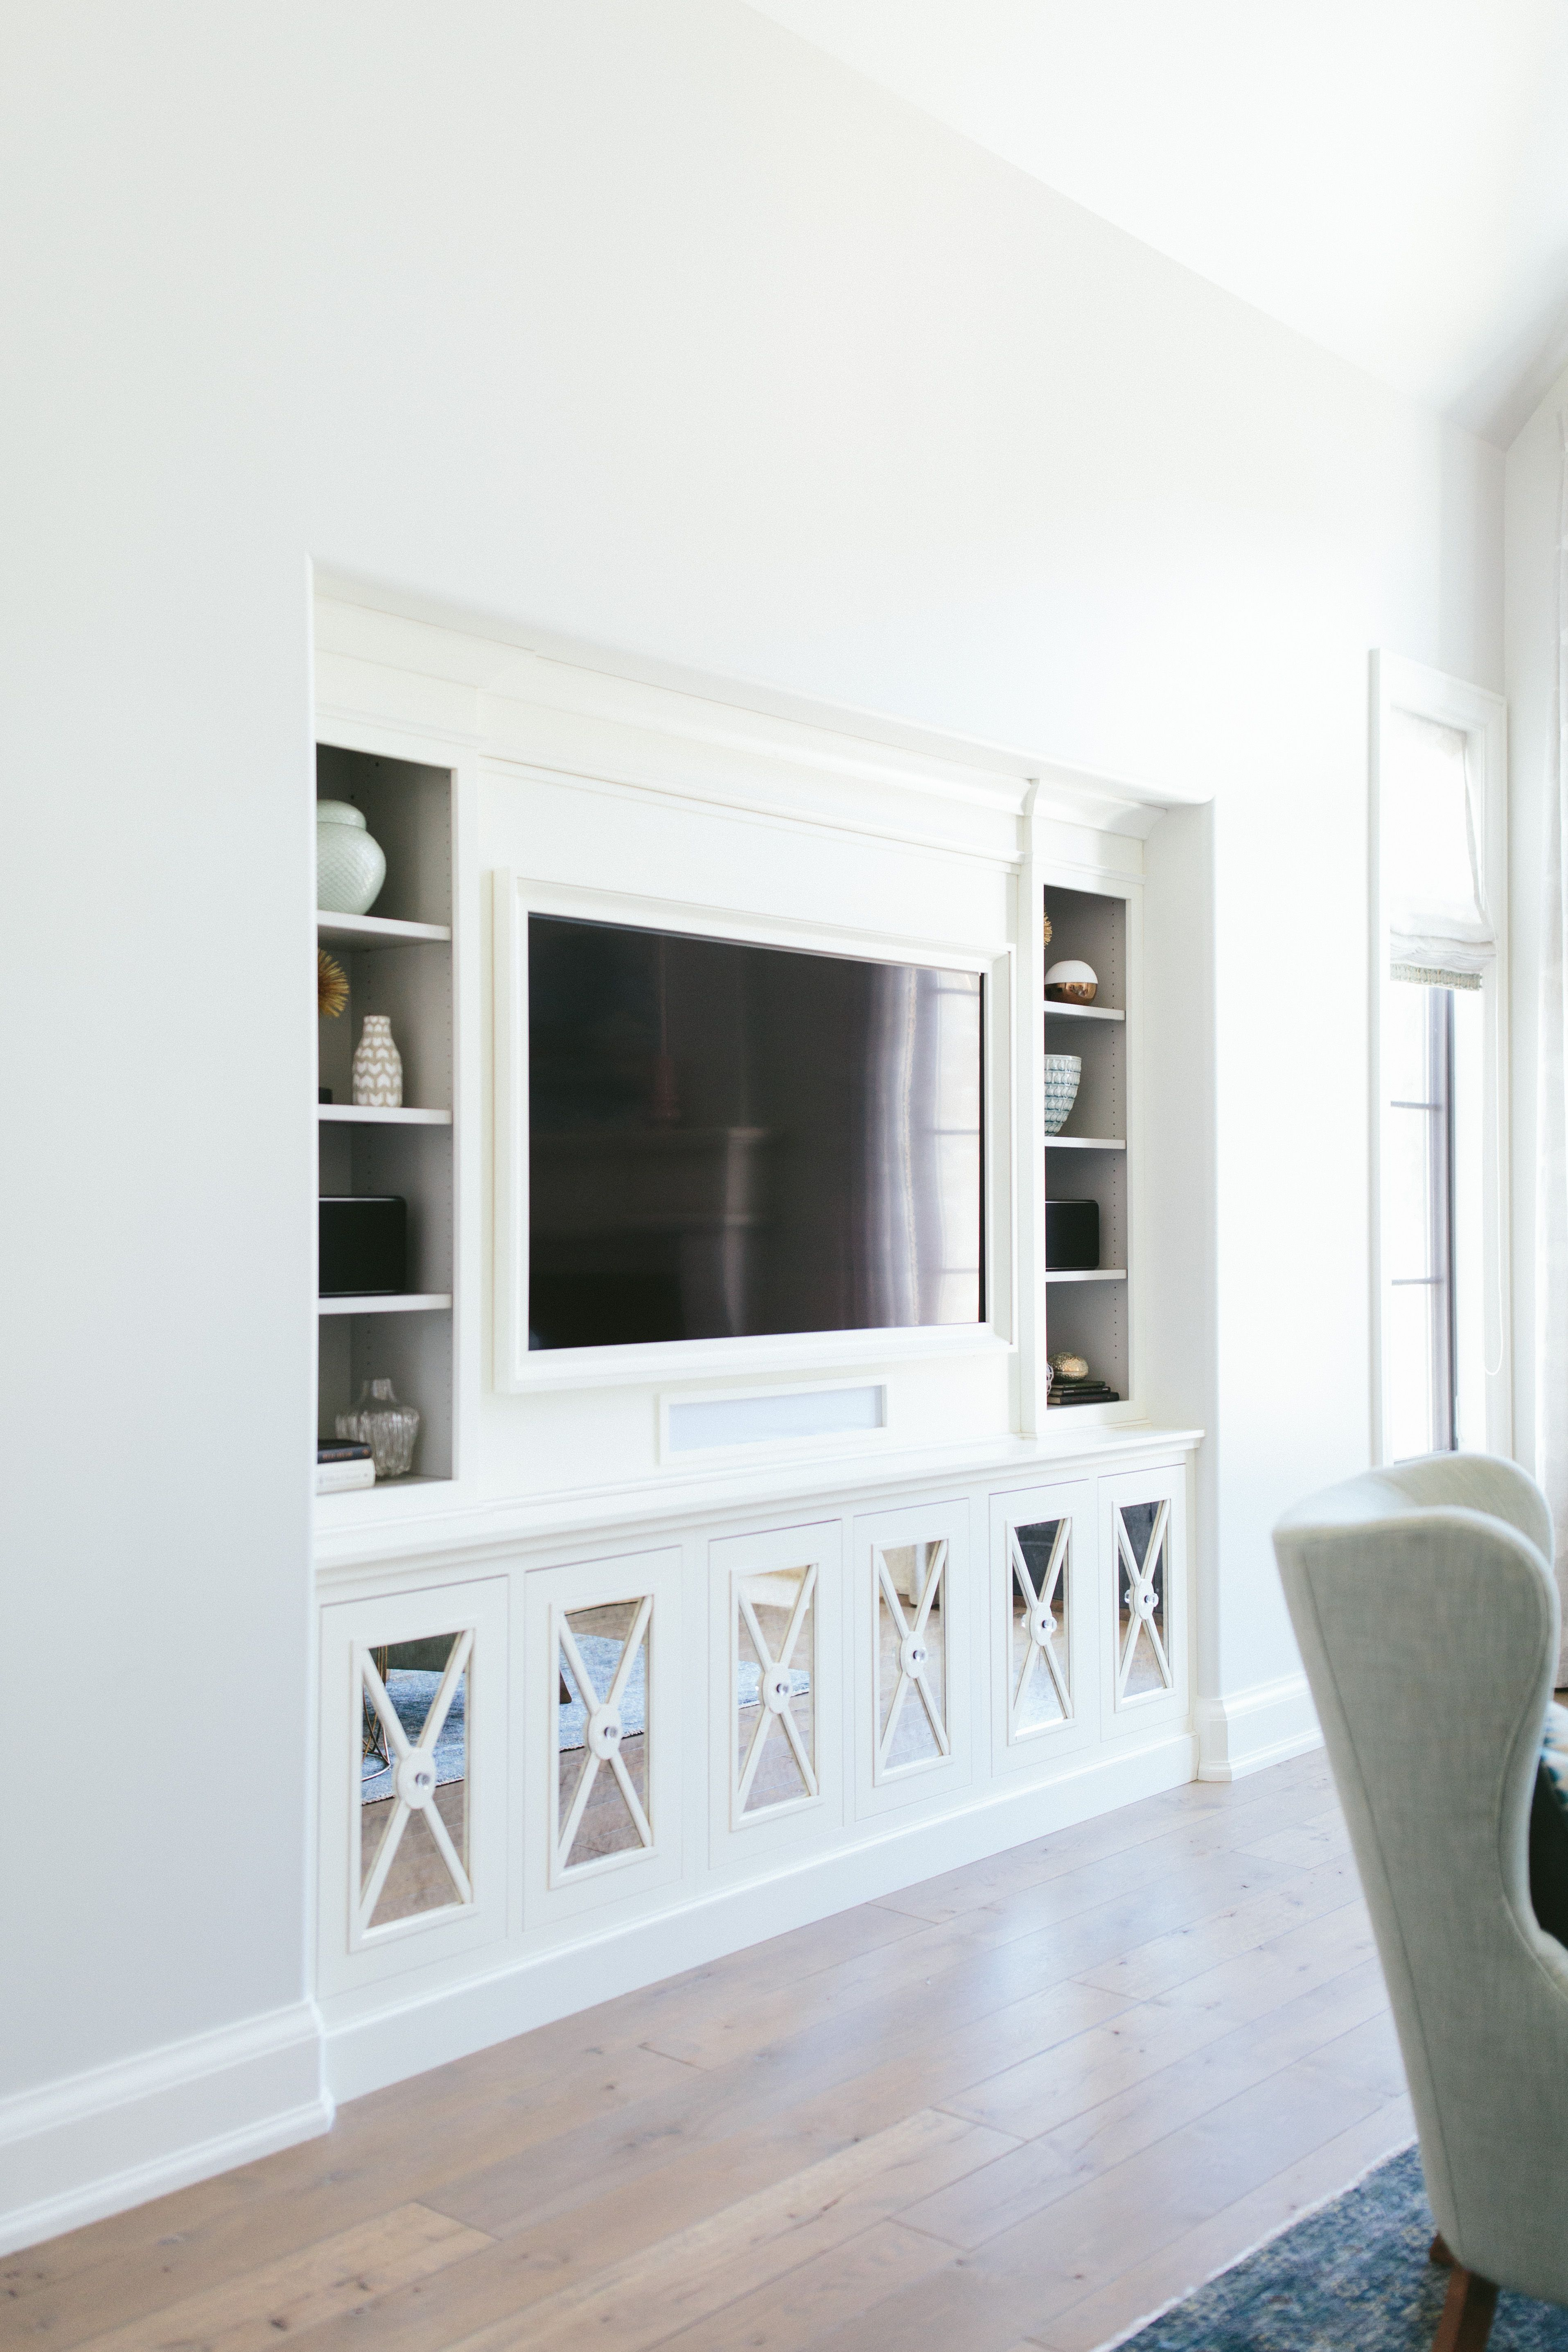 White Living Room Cabinets Maggies Full Condo Tour Tv Shelving Cabinets And Built In